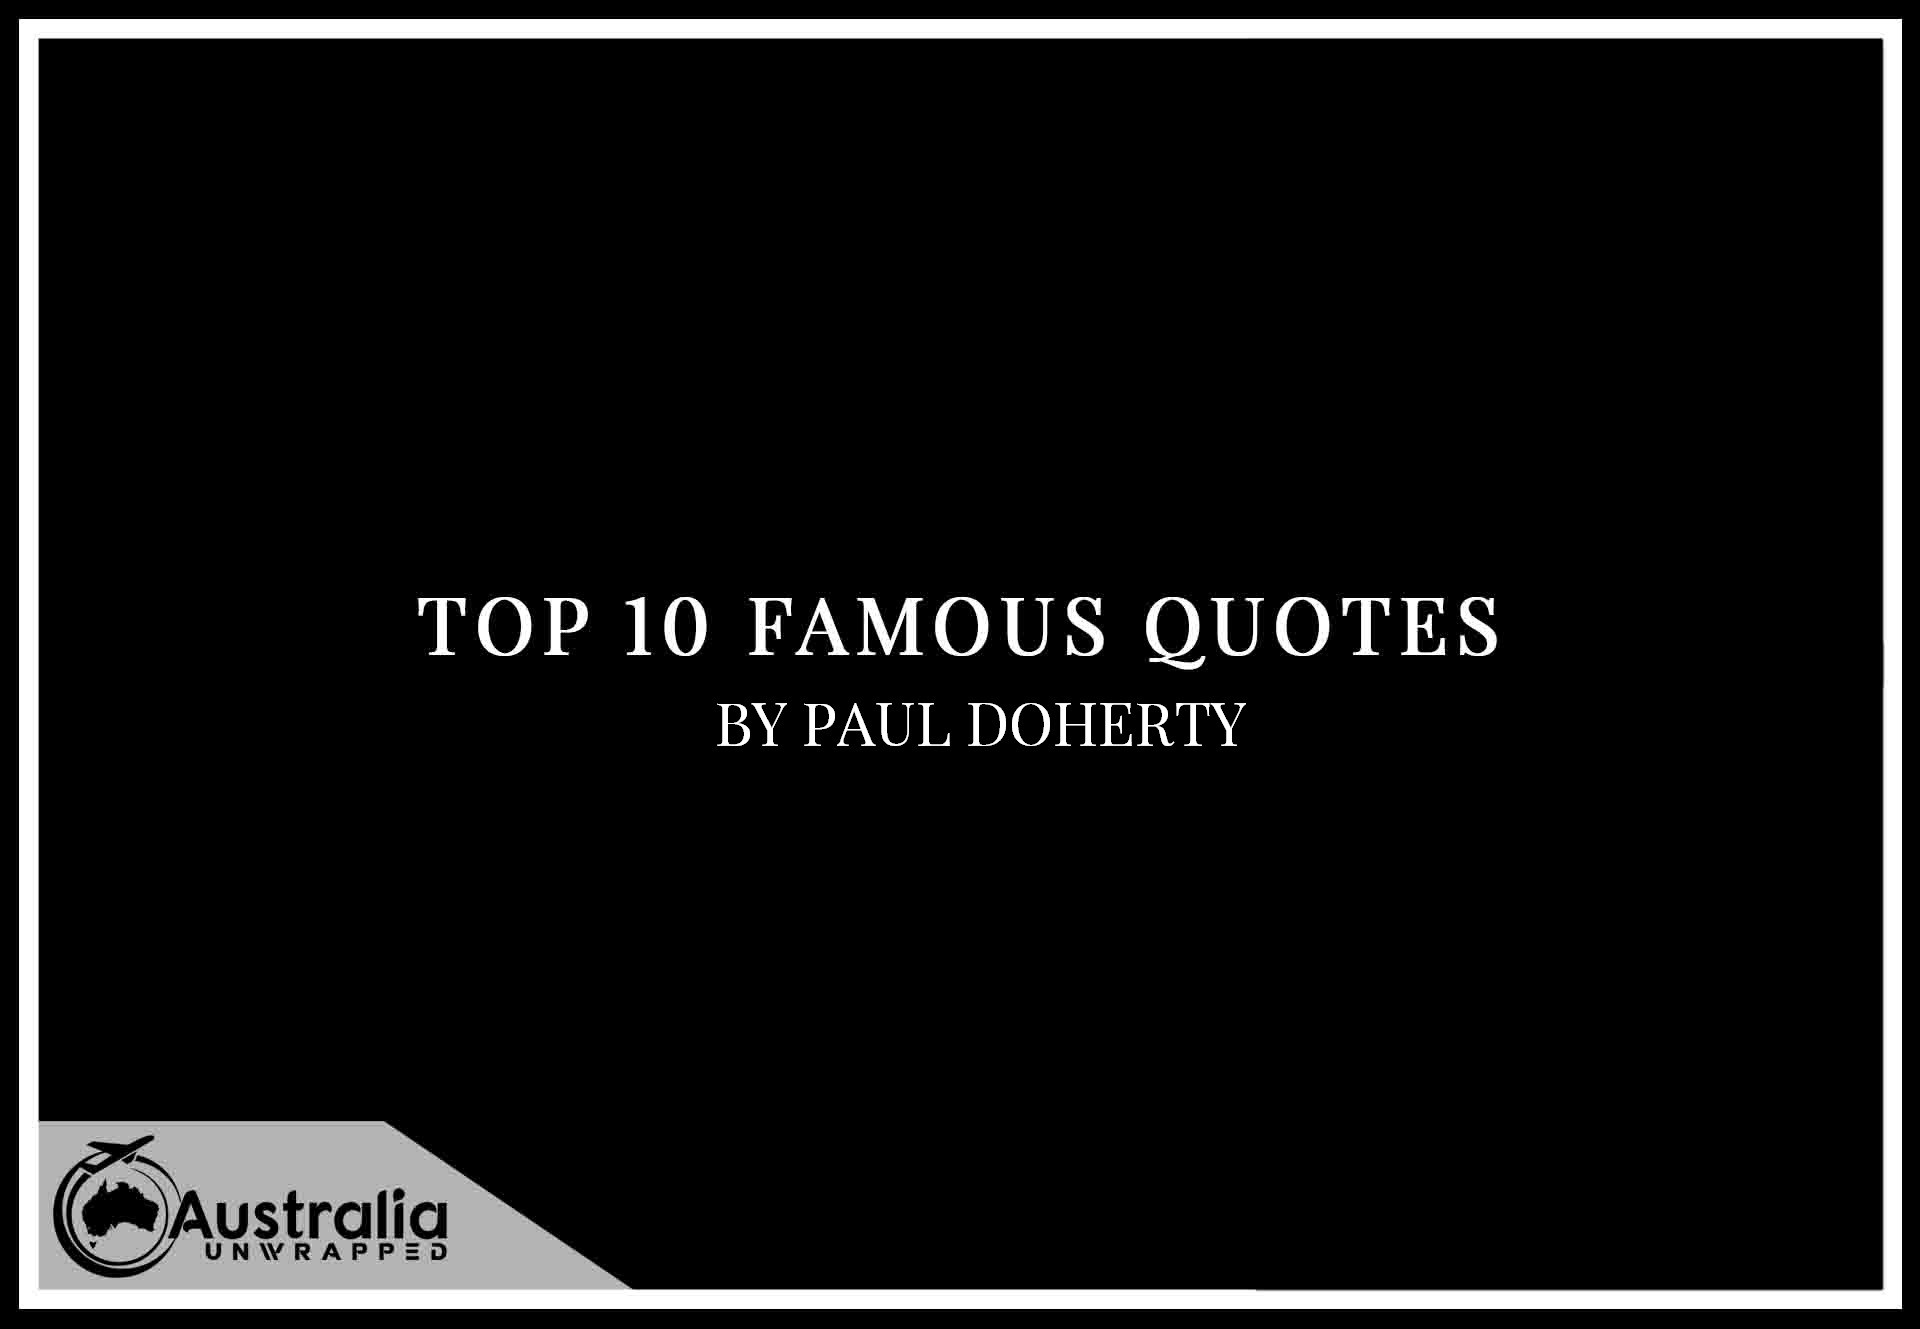 Top 10 Famous Quotes by Author Paul Doherty